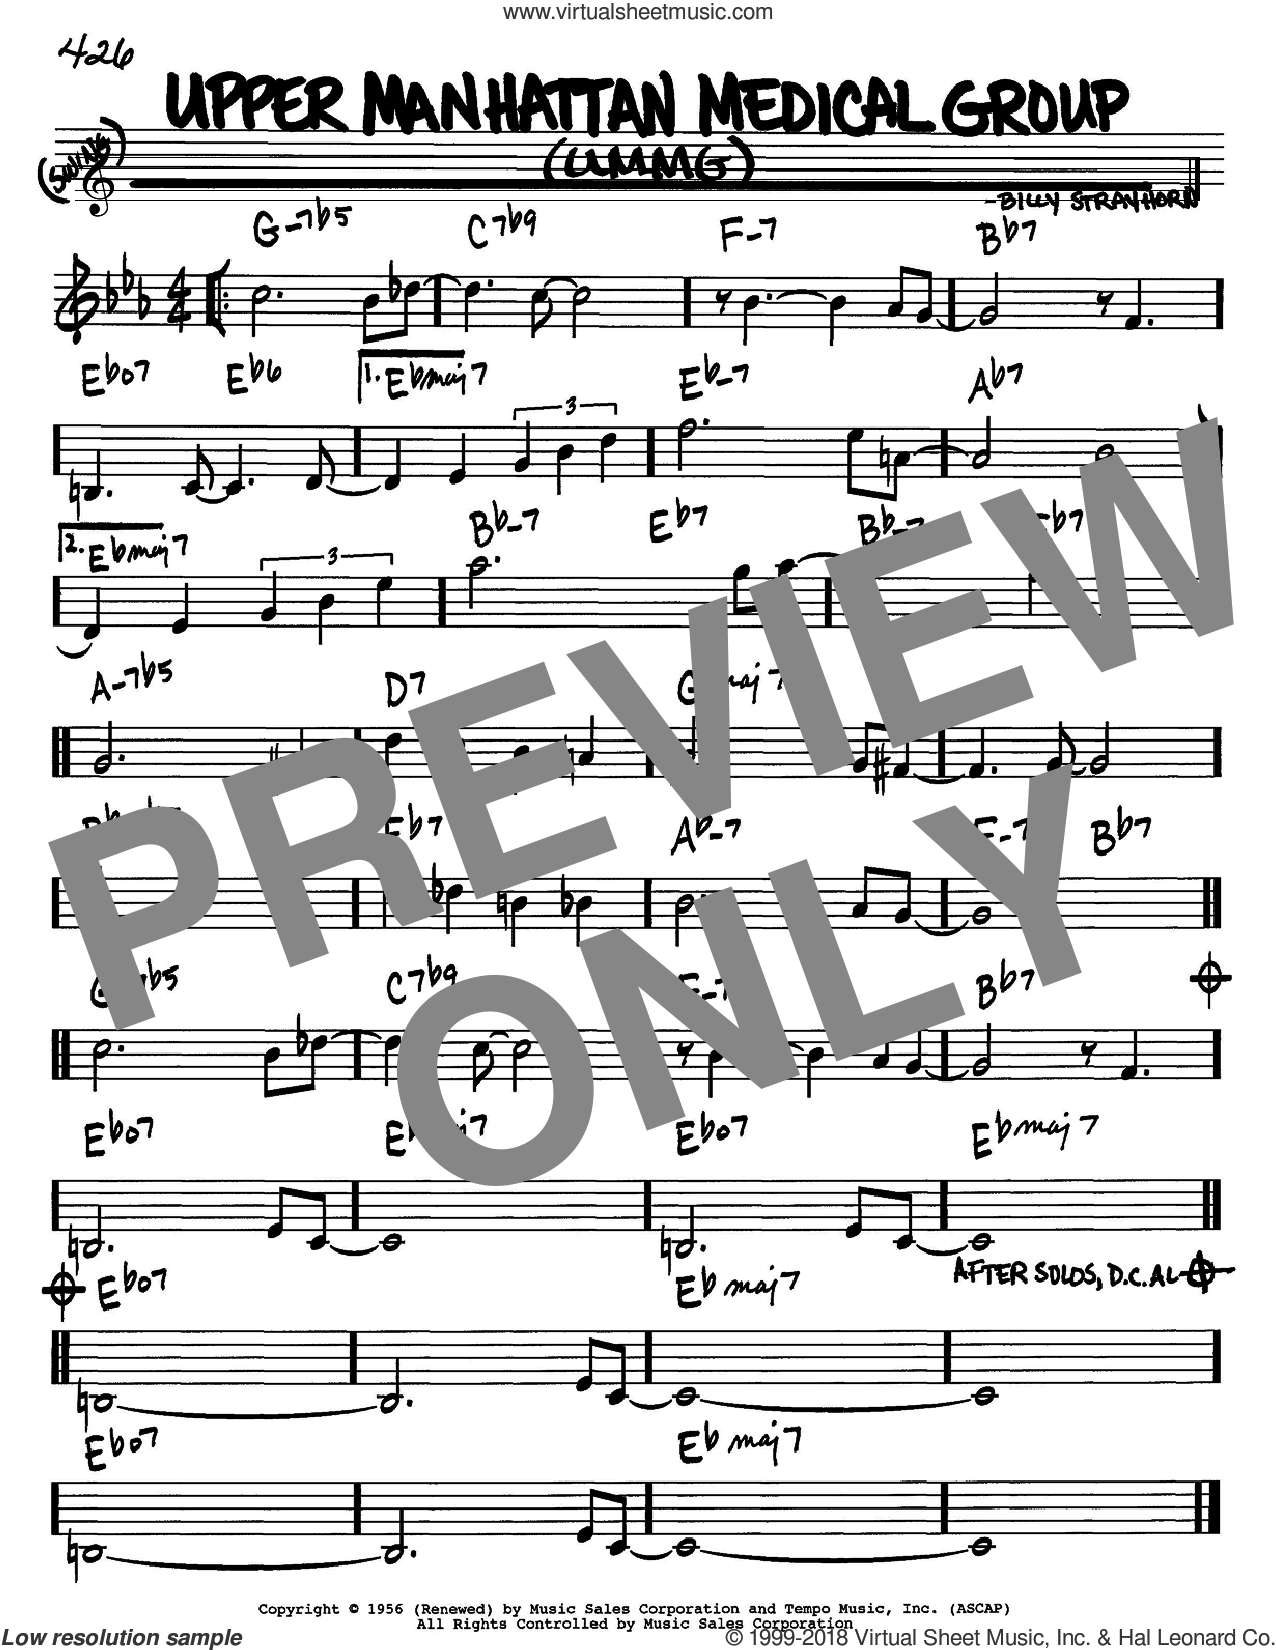 Upper Manhattan Medical Group (UMMG) sheet music for voice and other instruments (in Bb) by Billy Strayhorn, intermediate